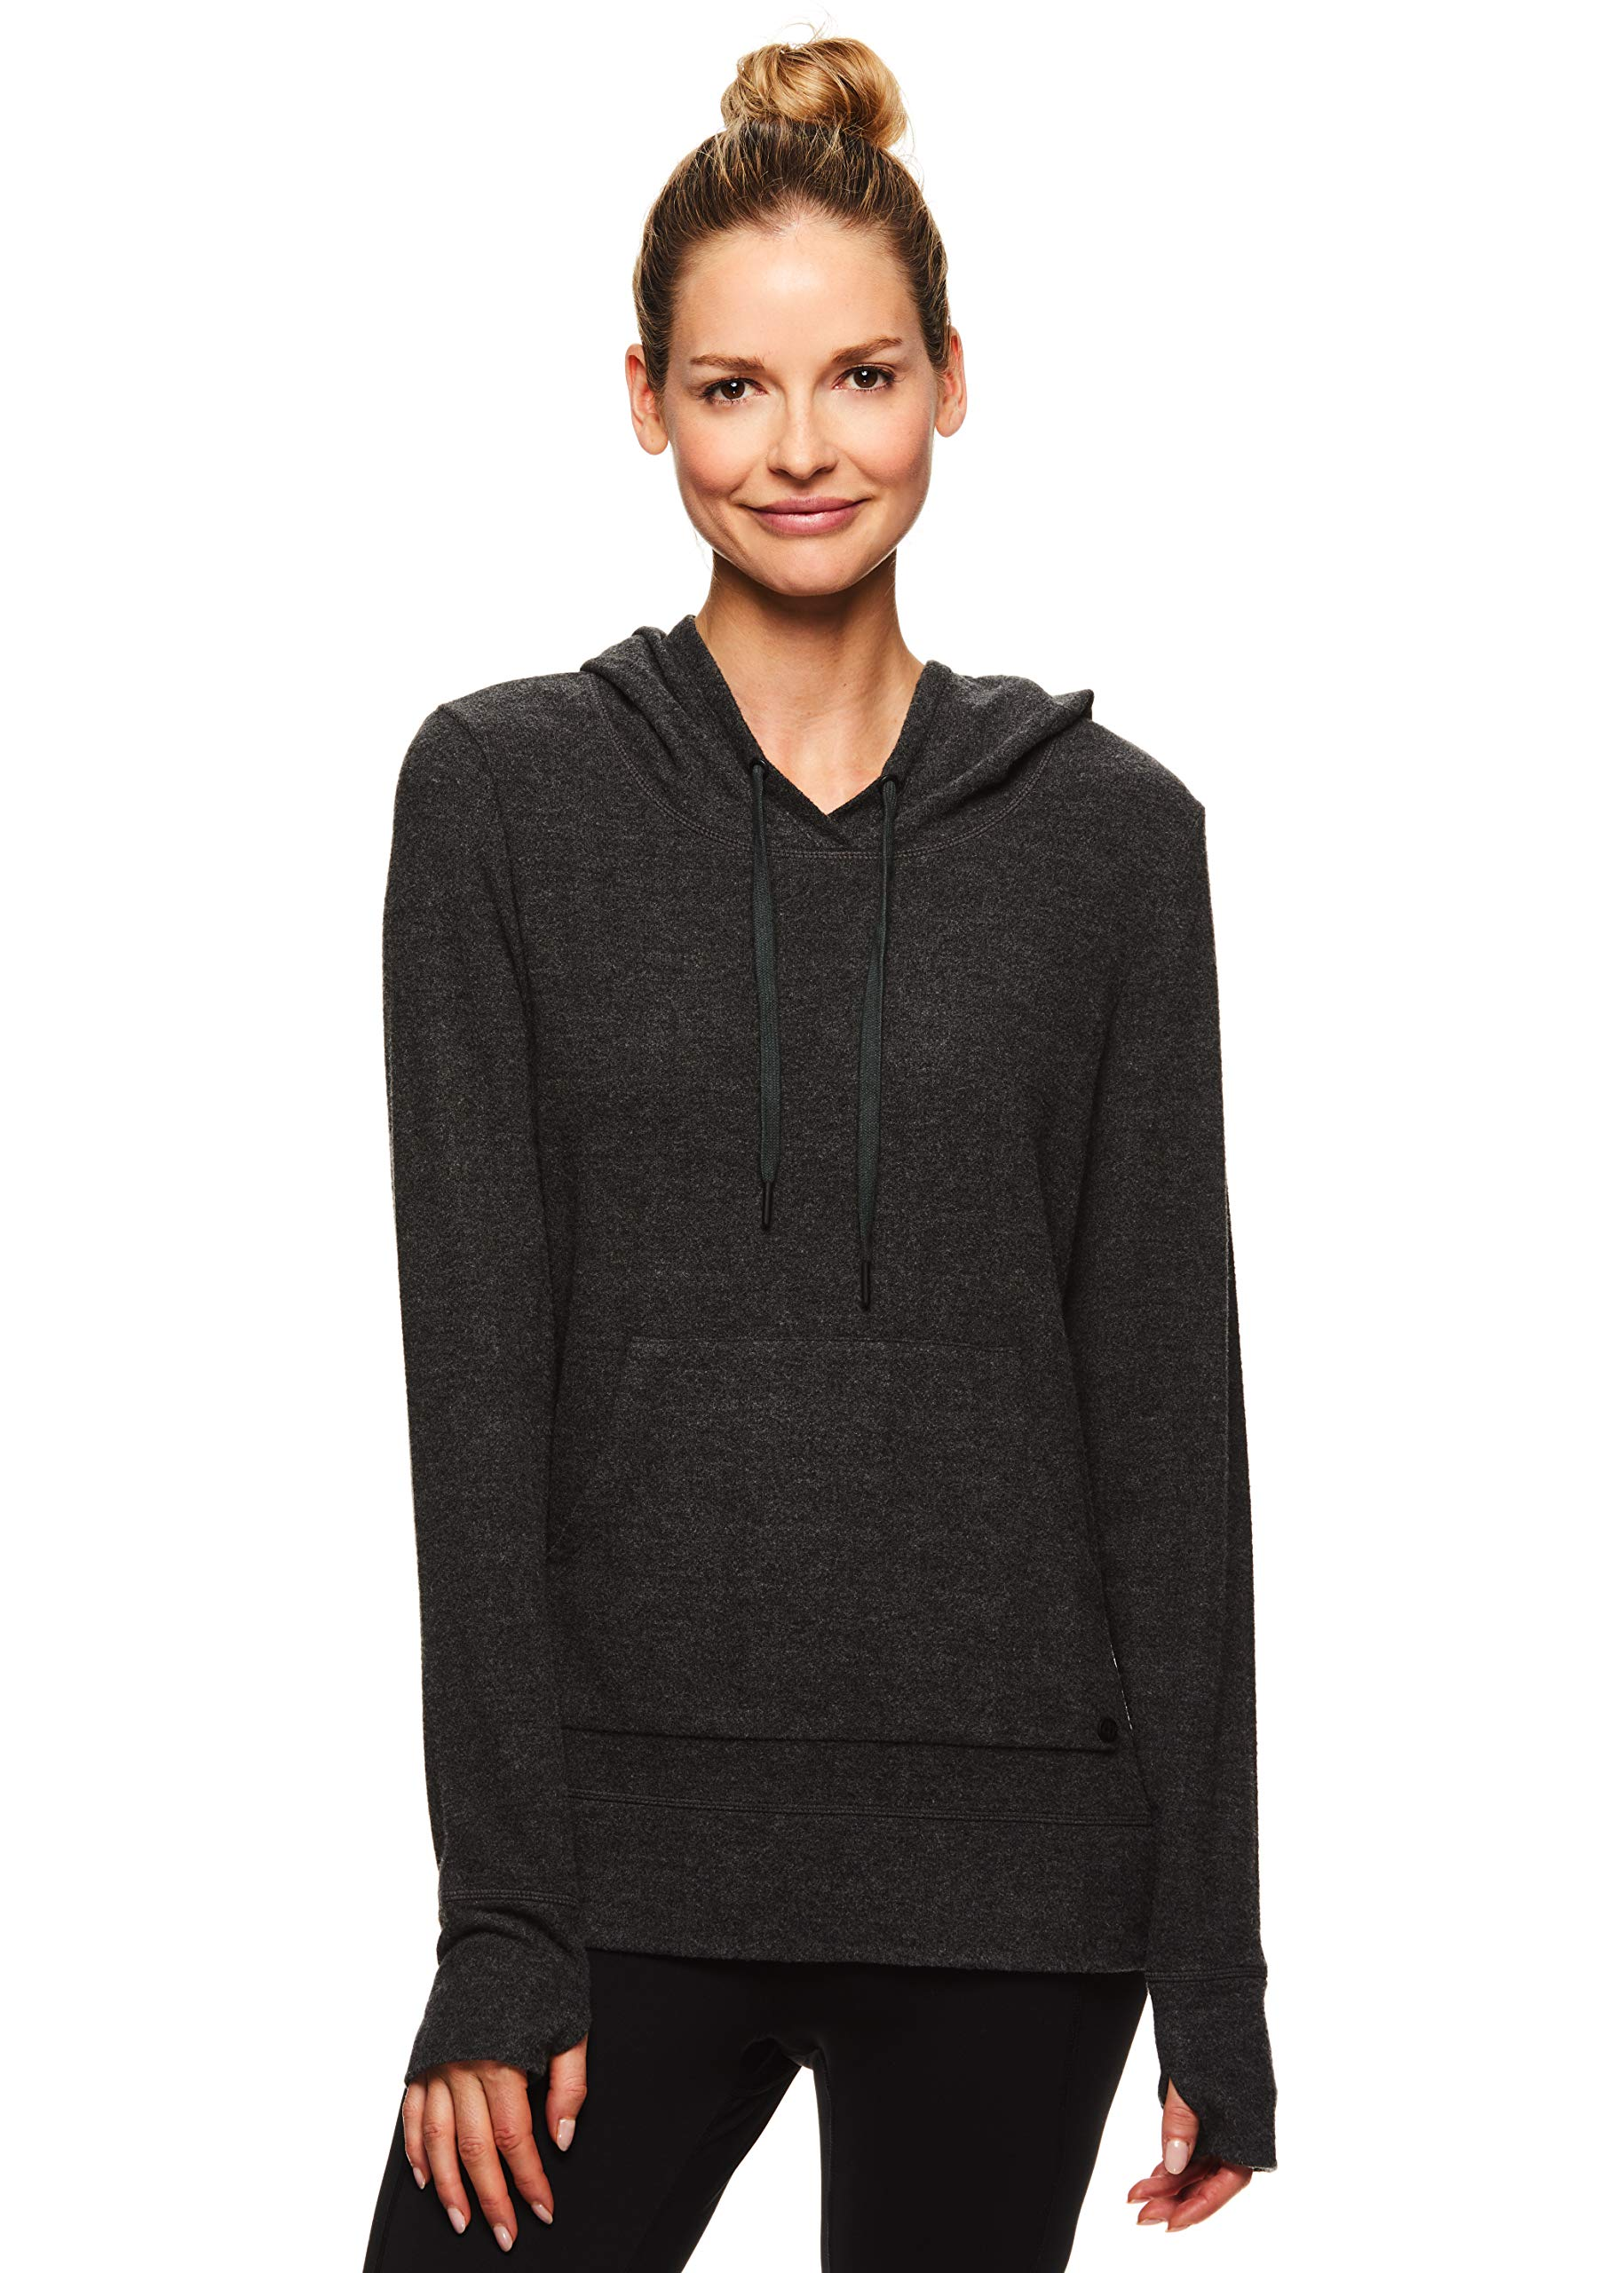 Gaiam Women's Lightweight Pullover Hoodie - Activewear Workout & Yoga Sweater - Elle Cozy Black Heather, Small by Gaiam